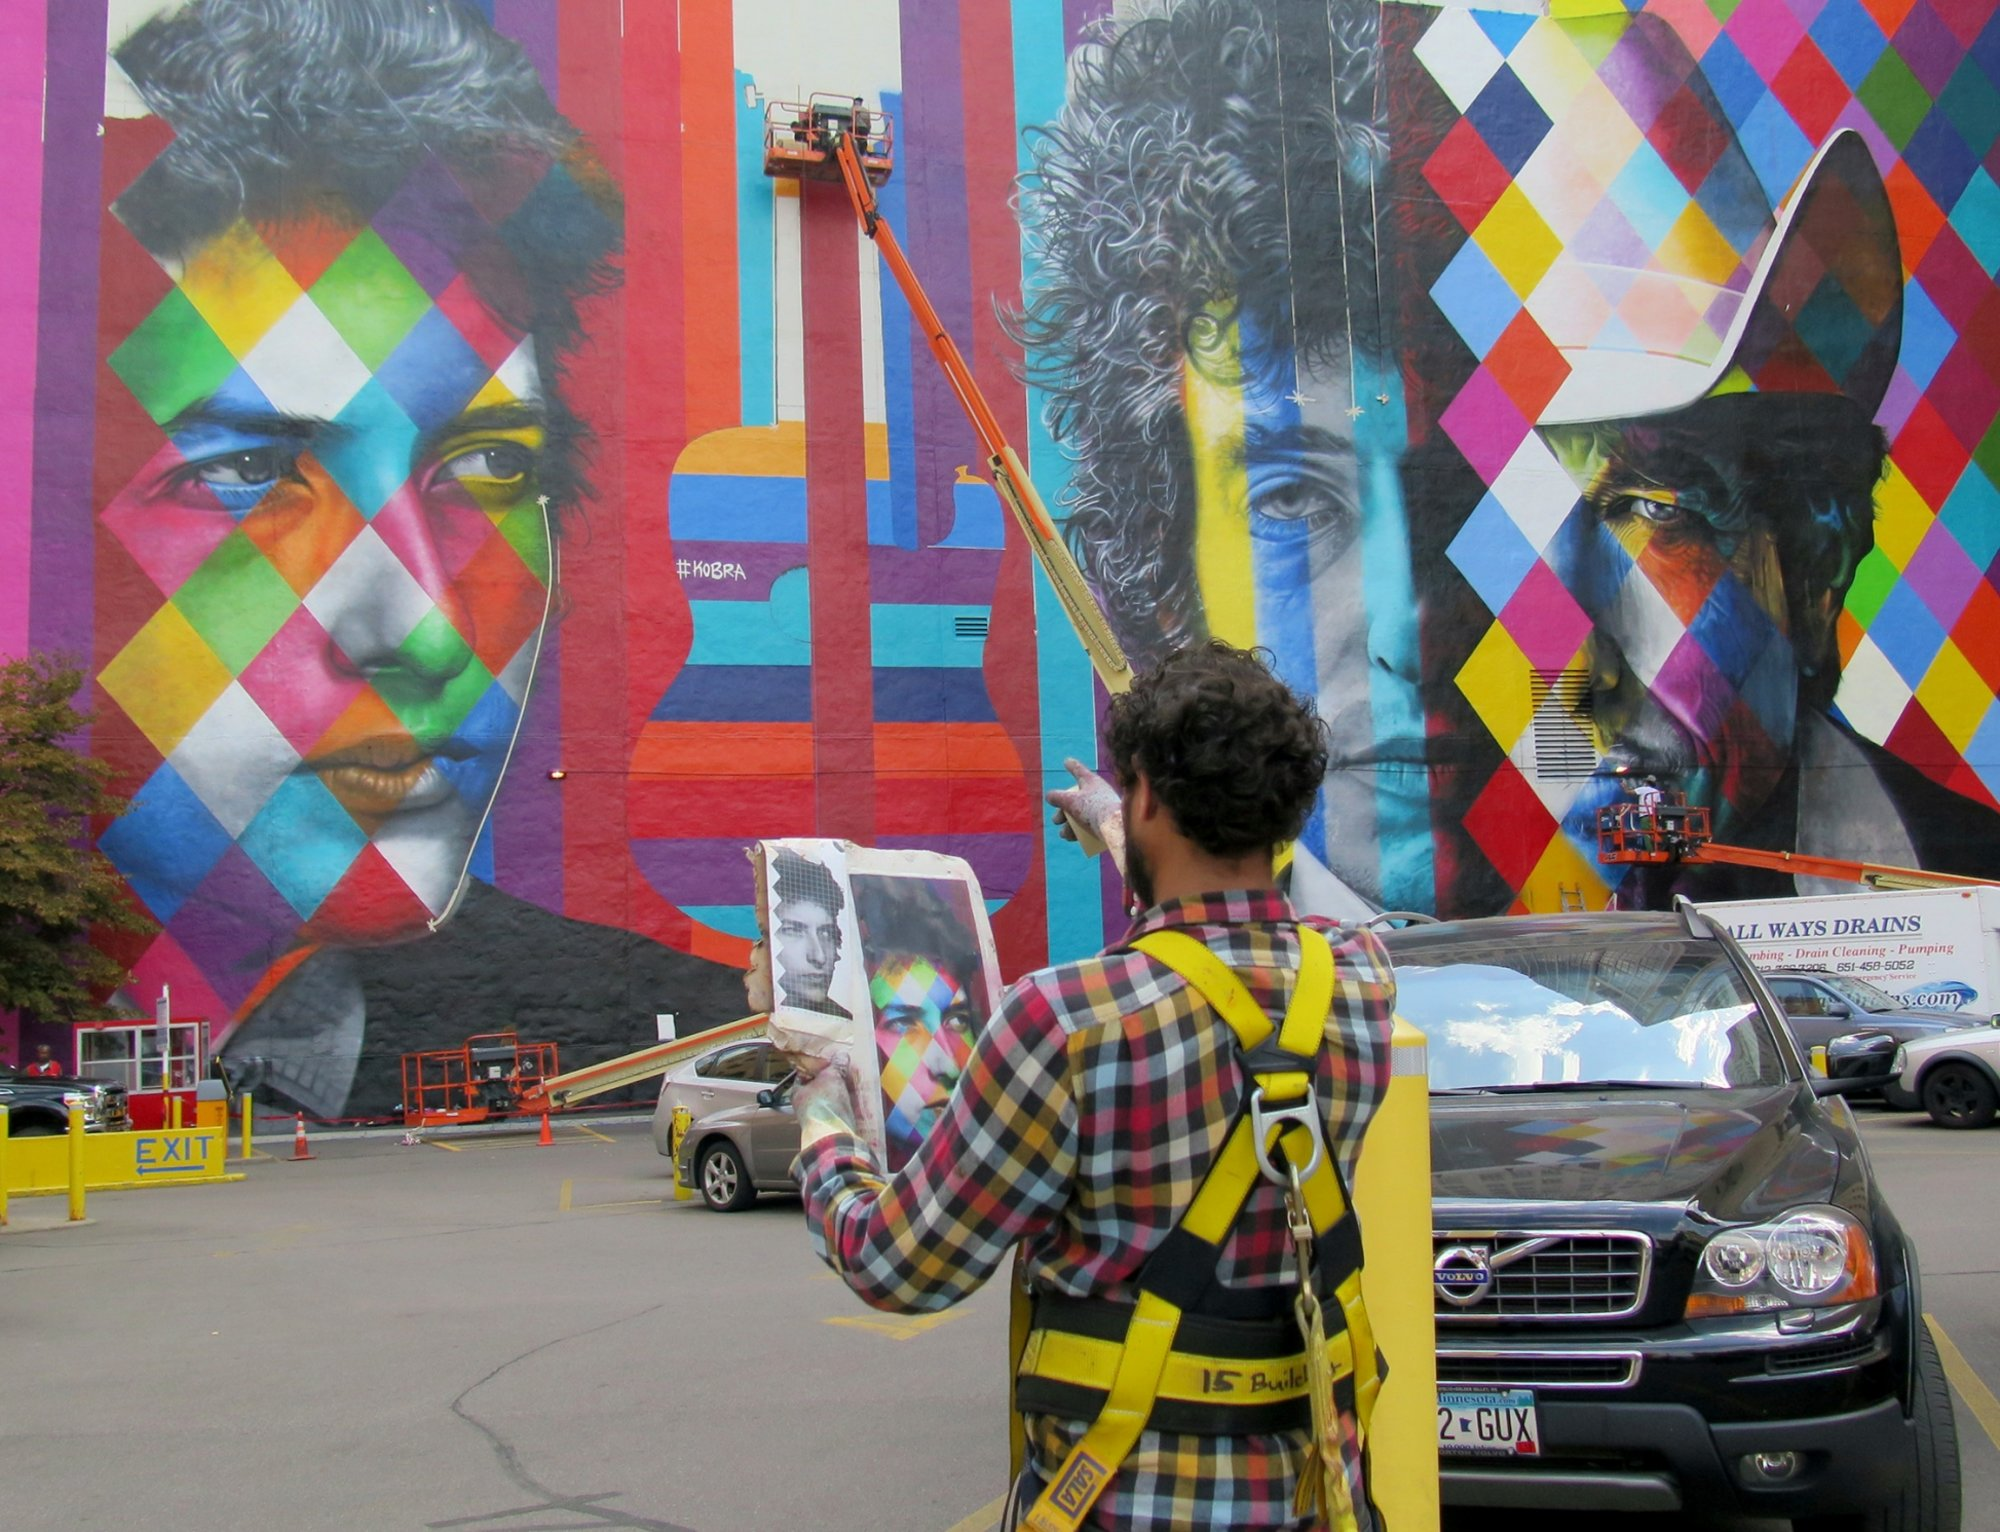 The Bob Dylan mural nears completion, Friday, Sept. 04, as one of the artists steps back to check his work.